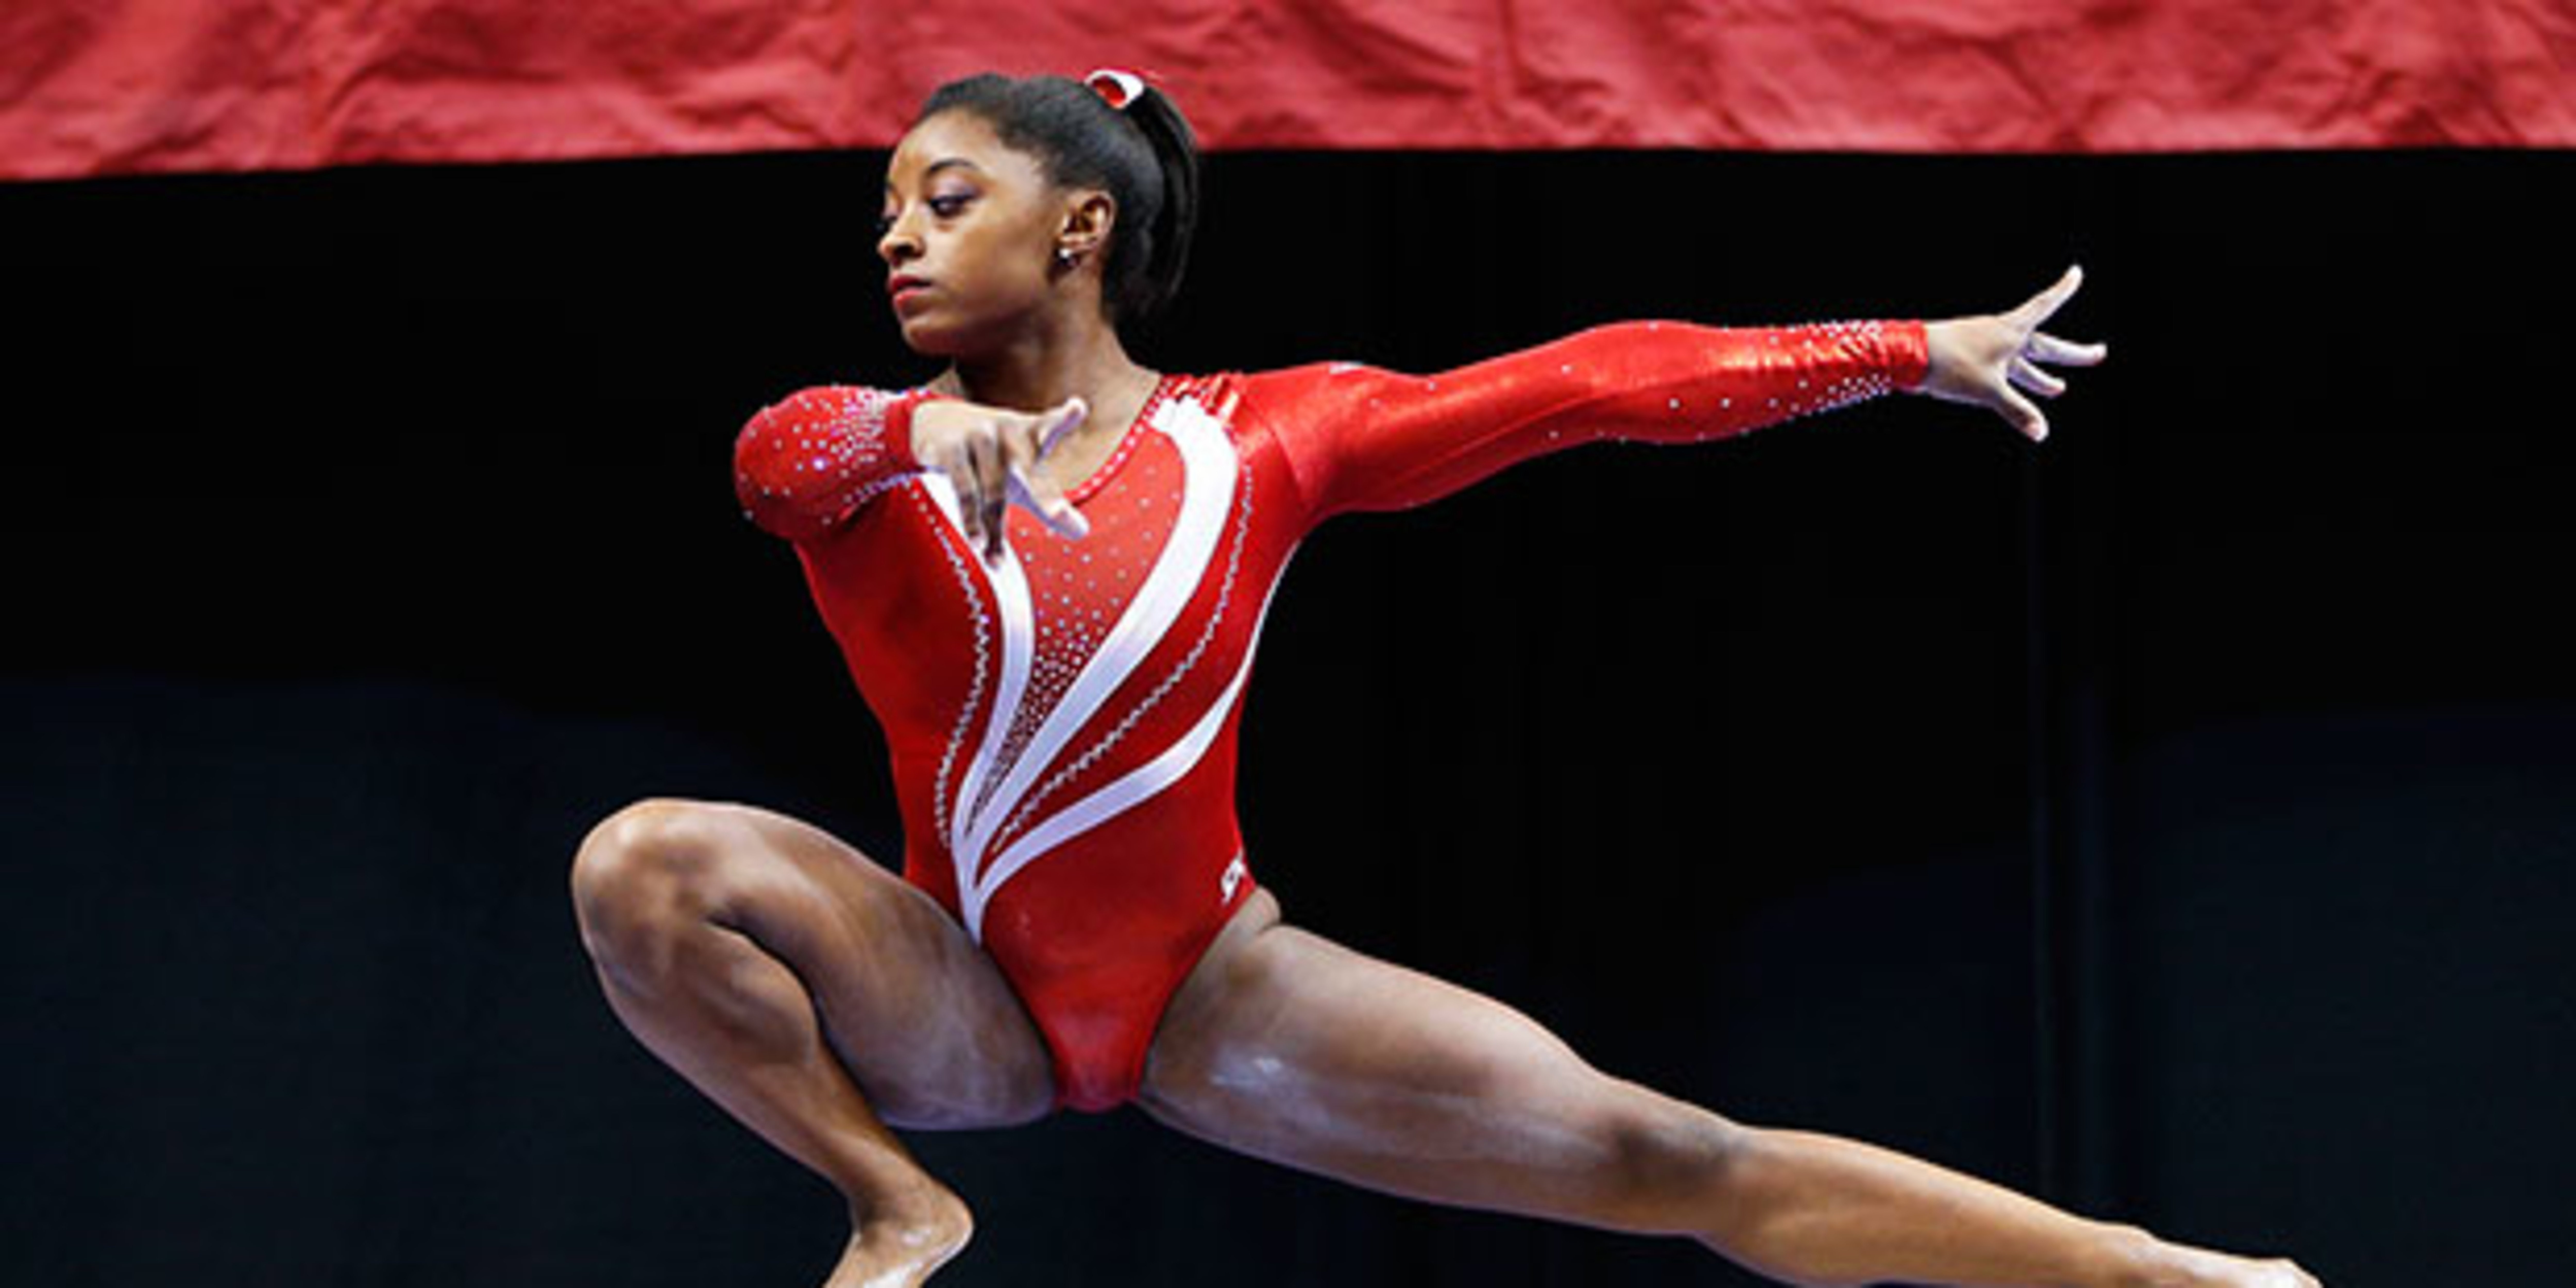 2016 will be the year you keep hearing about gymnast